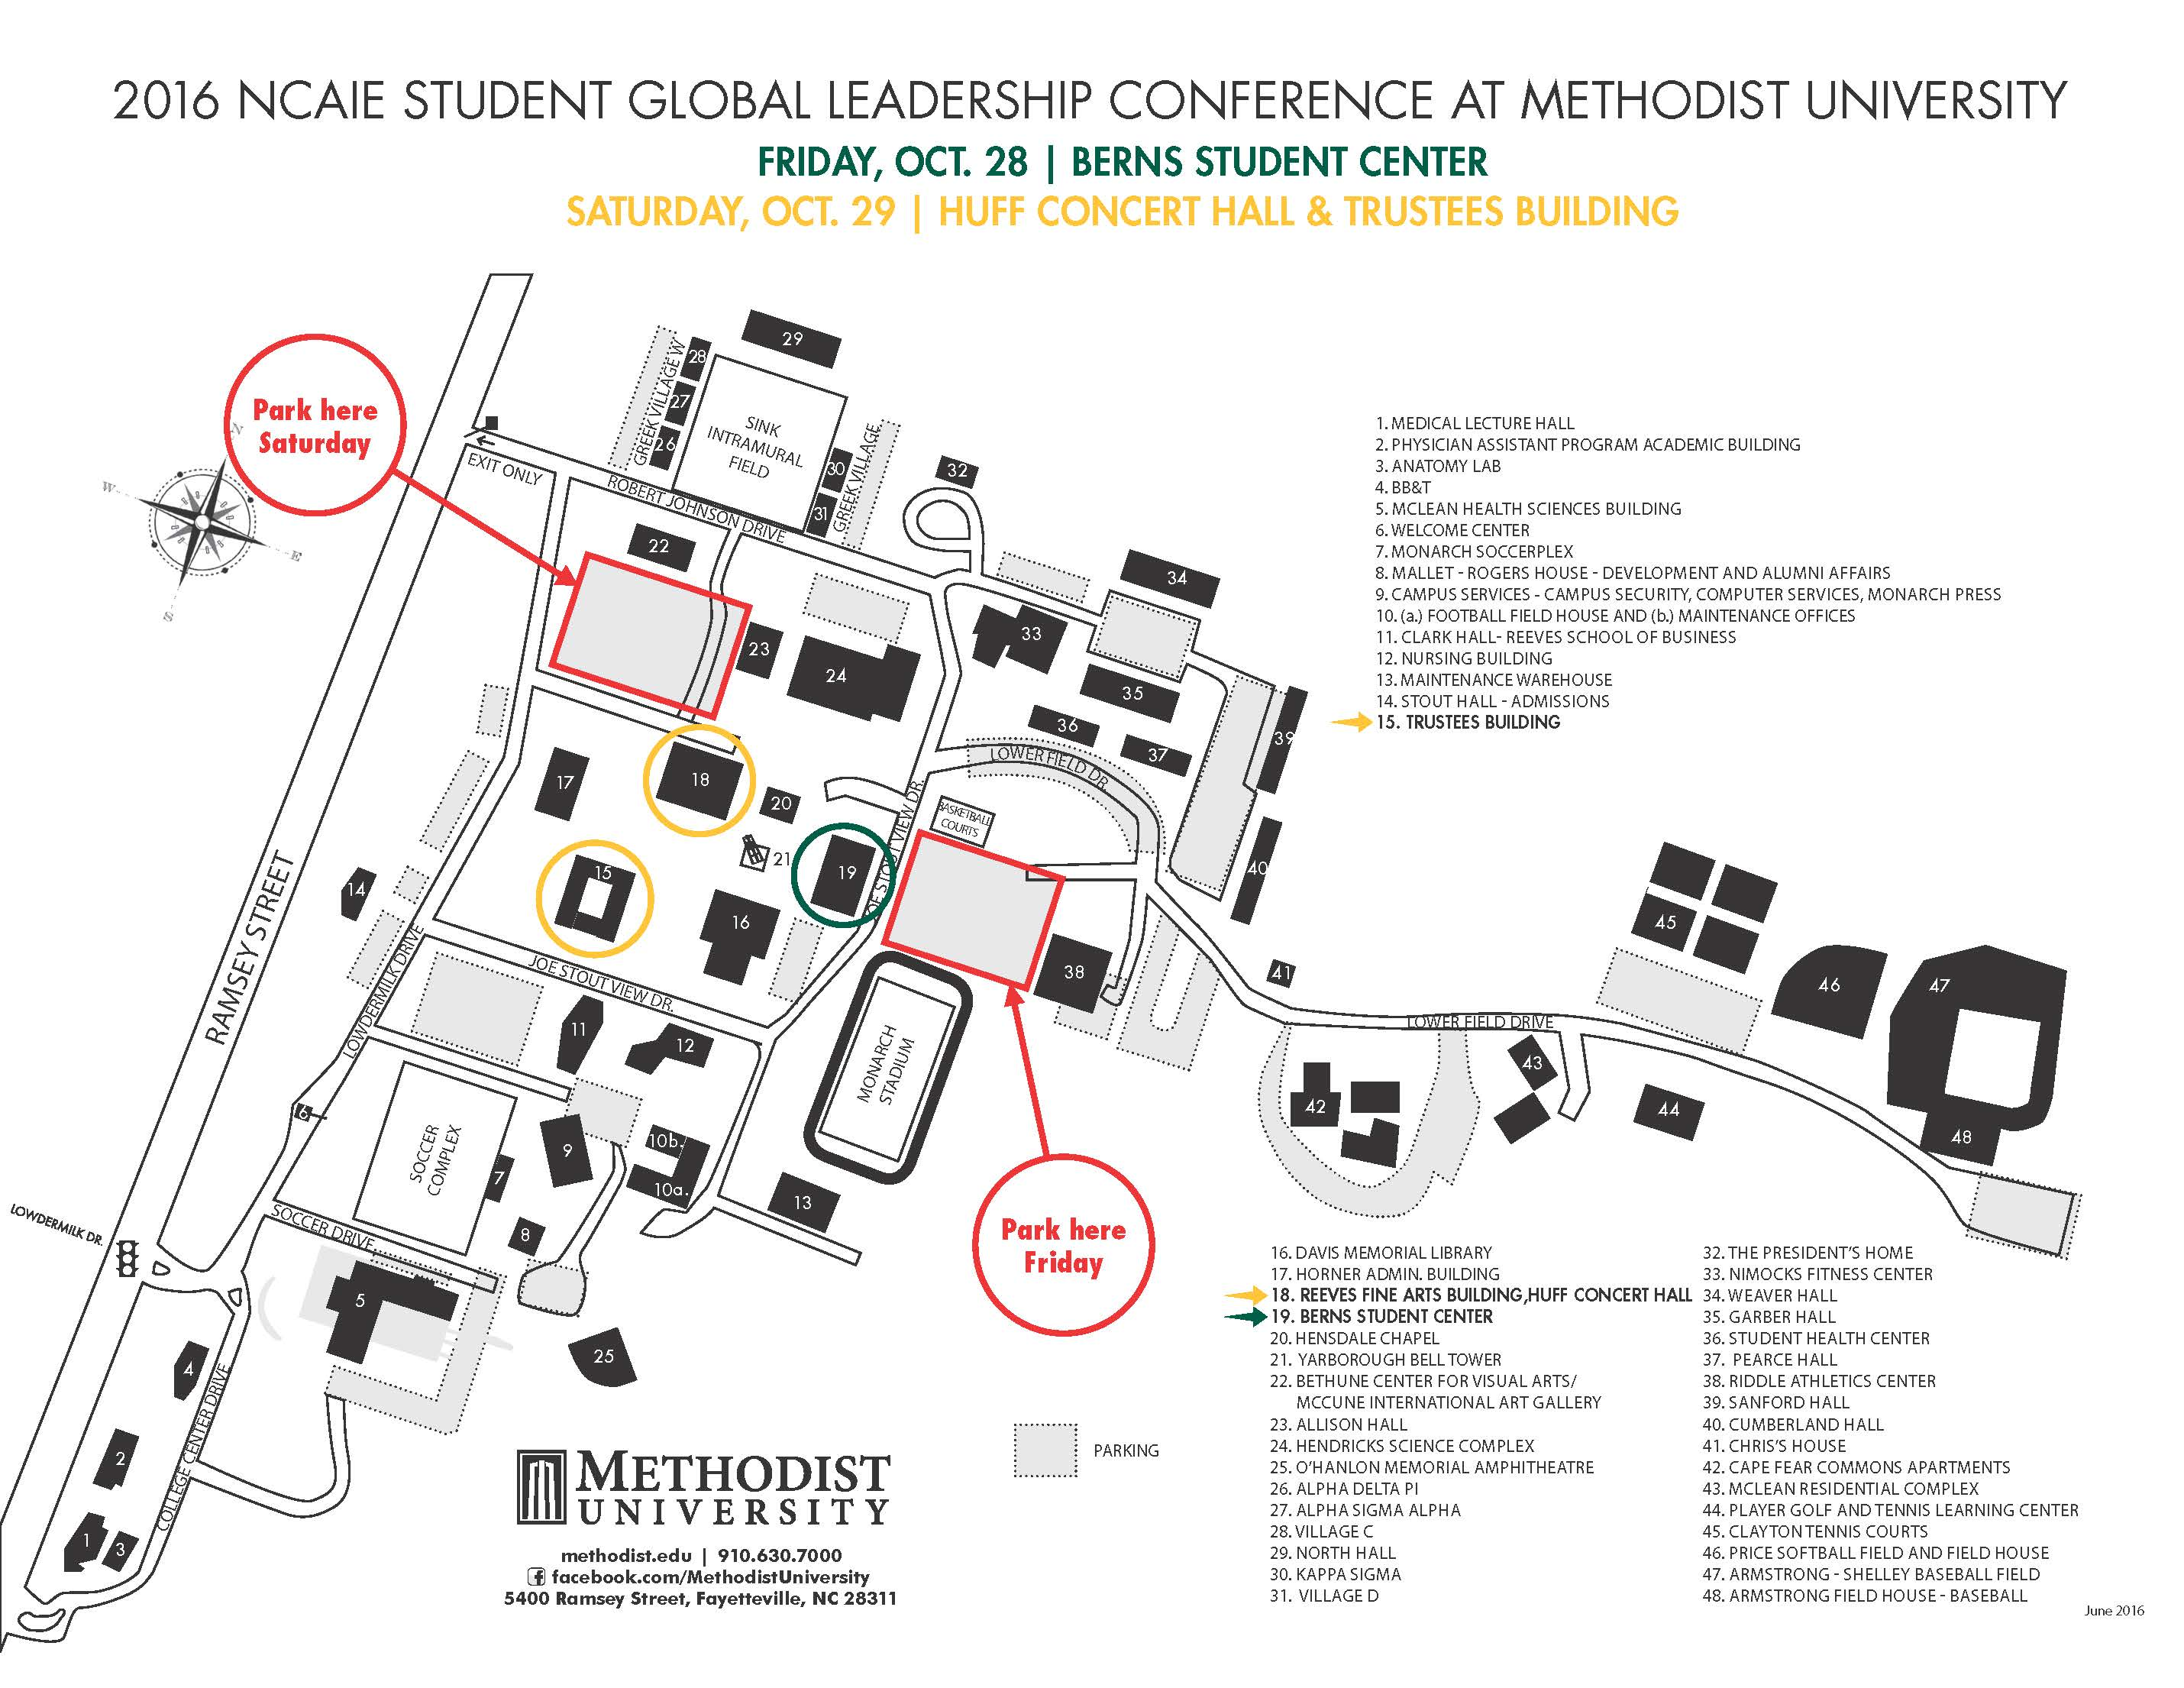 MU Campus Map_NCAIE conference_9-29-2016 (1)